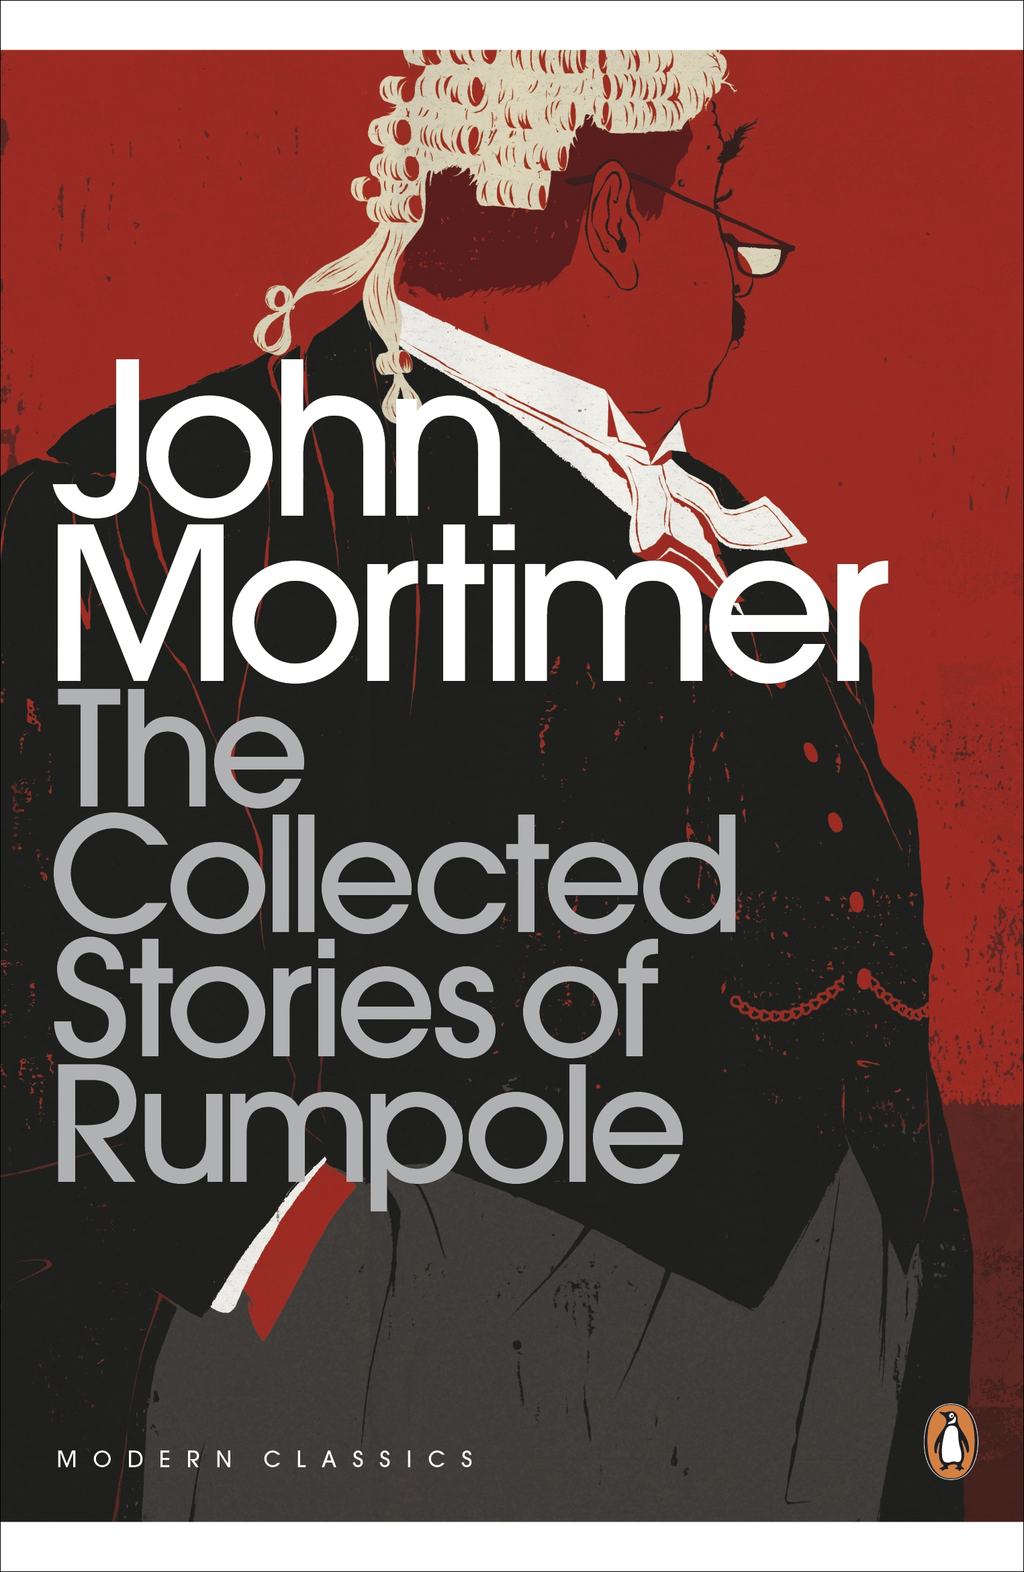 The Collected Stories of Rumpole